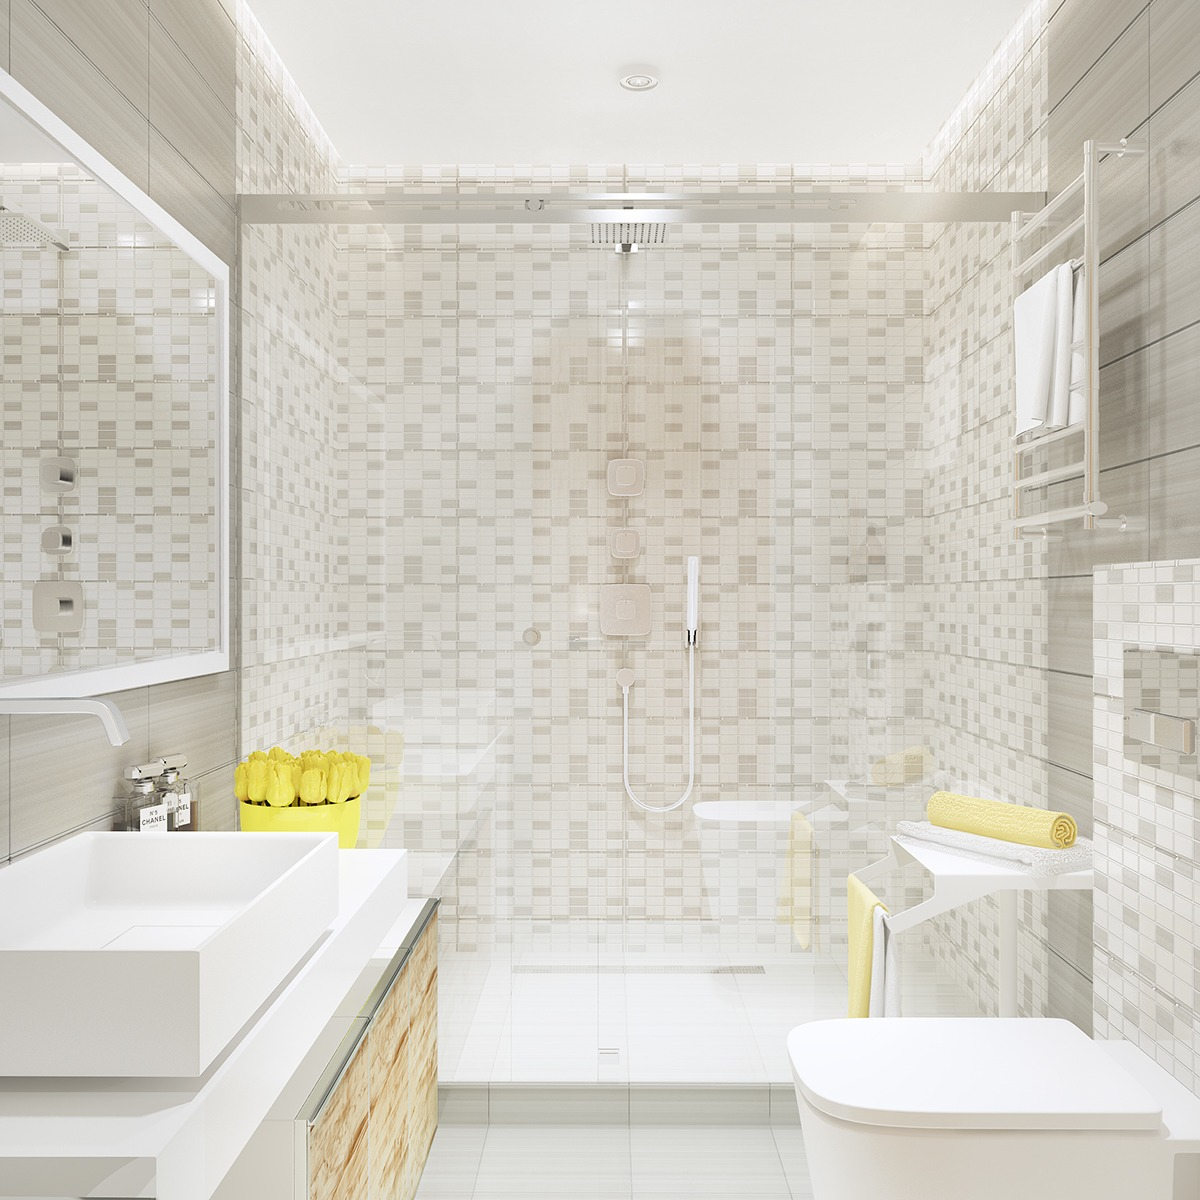 Gray tile bathroom interior design ideas for Bathroom ideas gray tile